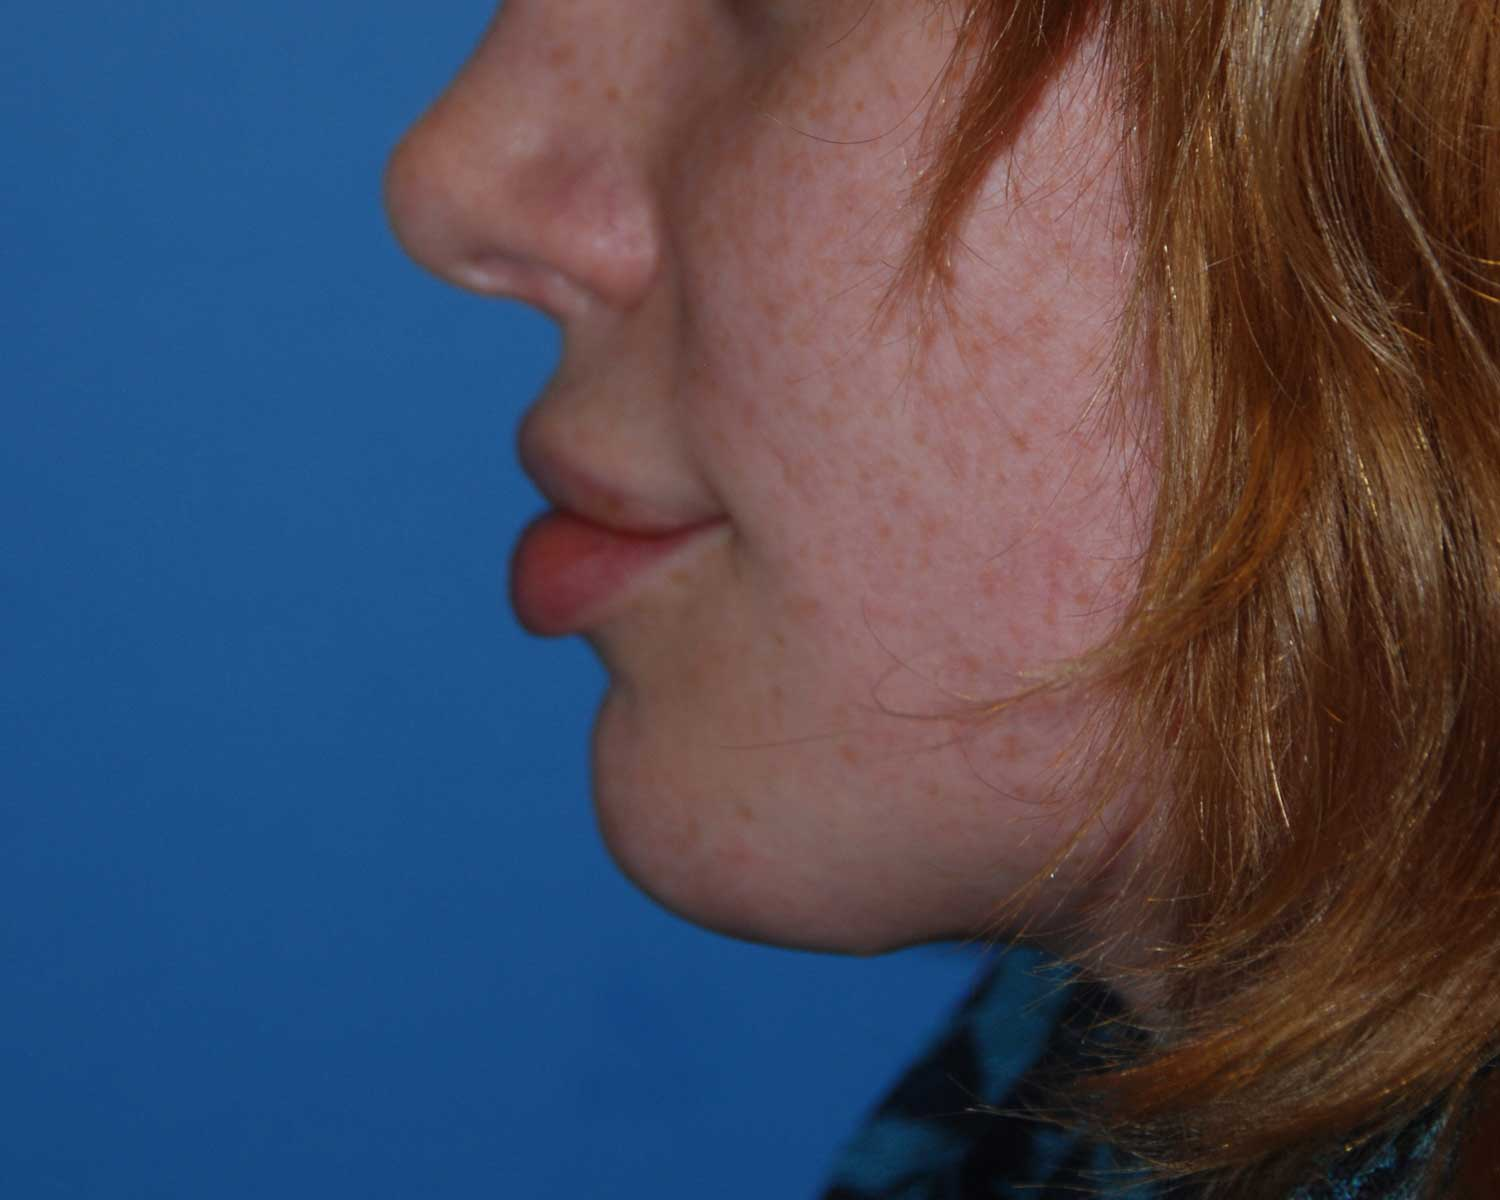 After Chin Reduction / Re-shaping and Lip Enhancement with a V-Y Advancement Flaps